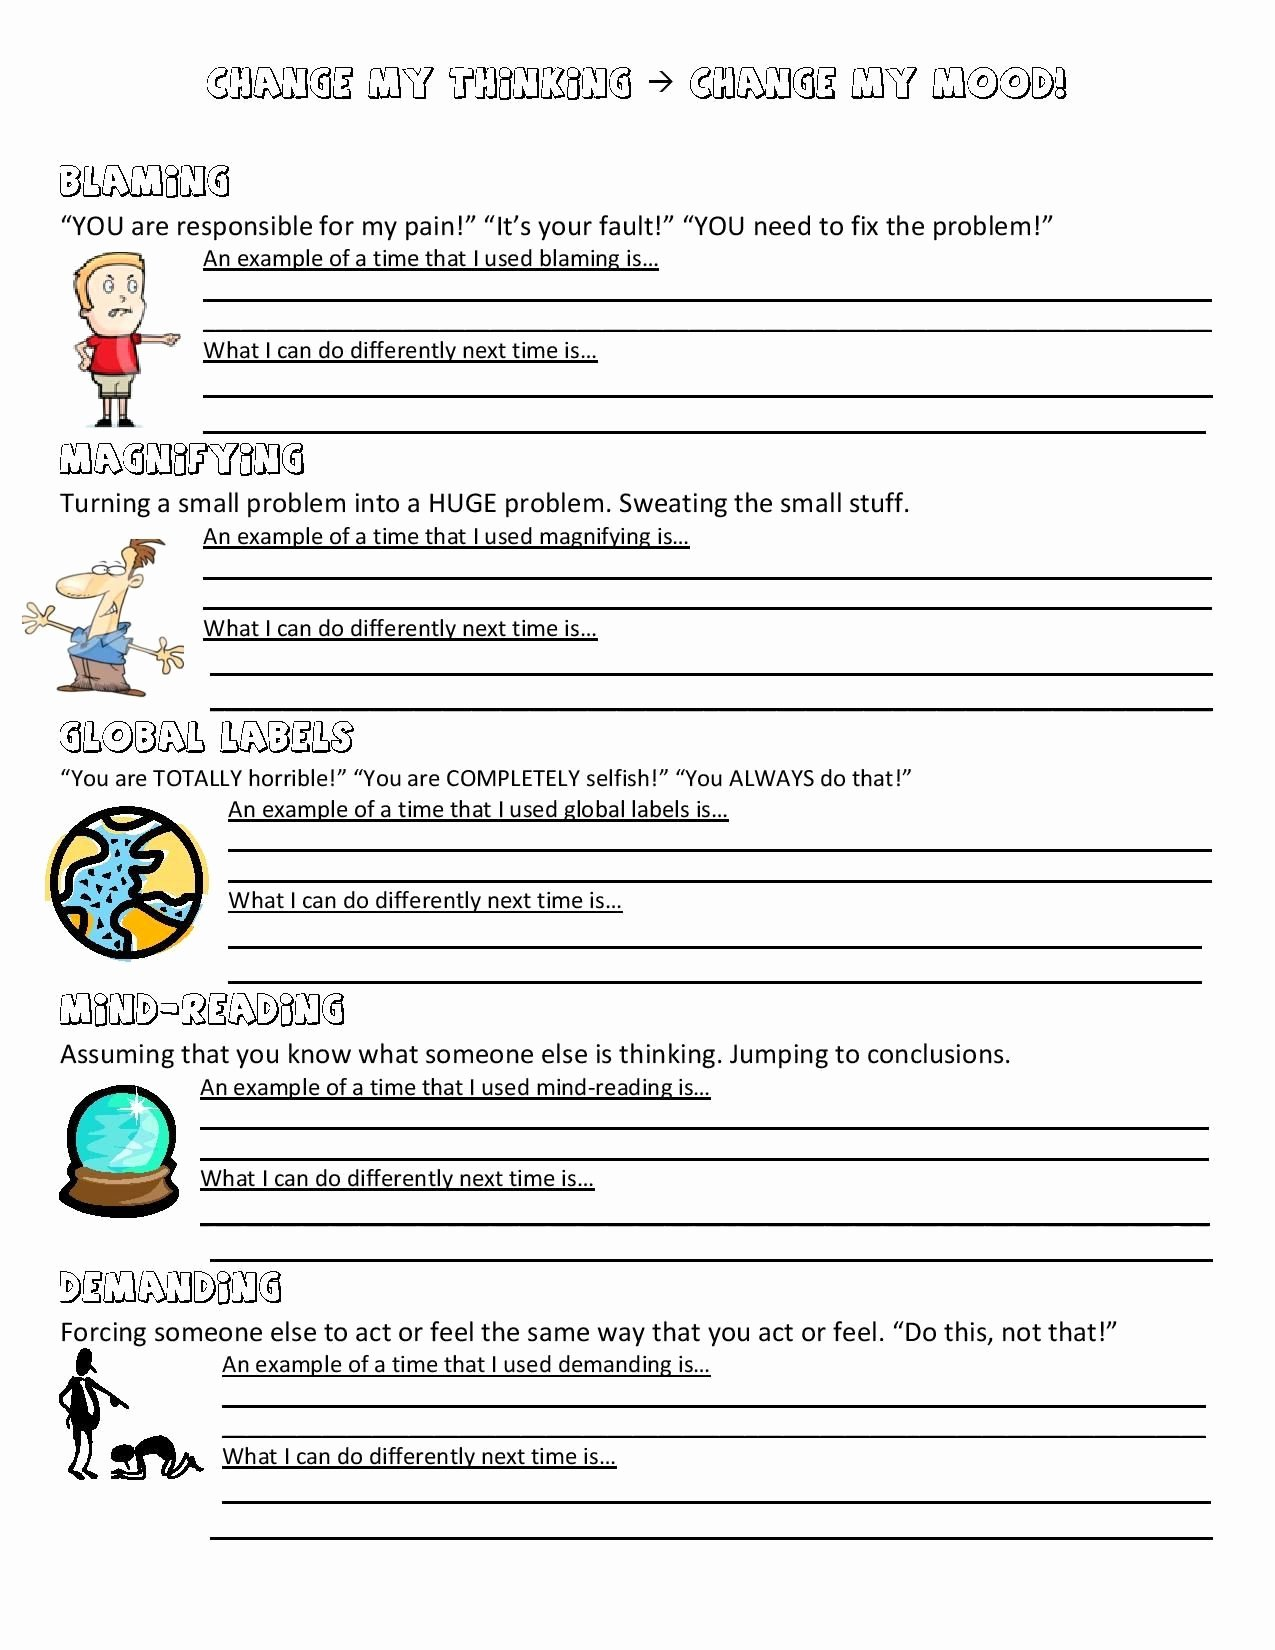 Psychology Worksheets for Highschool Students New Psychology Worksheets for Highschool Students